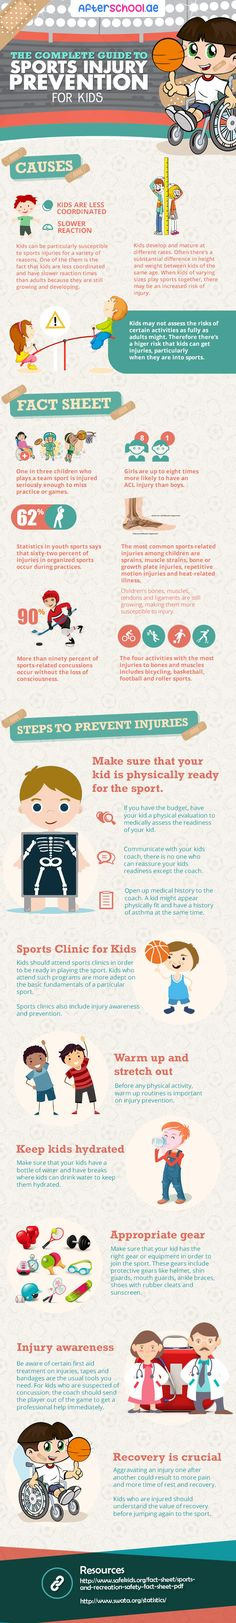 The Complete Guide to Sports Injury Prevention for Kids #infographic